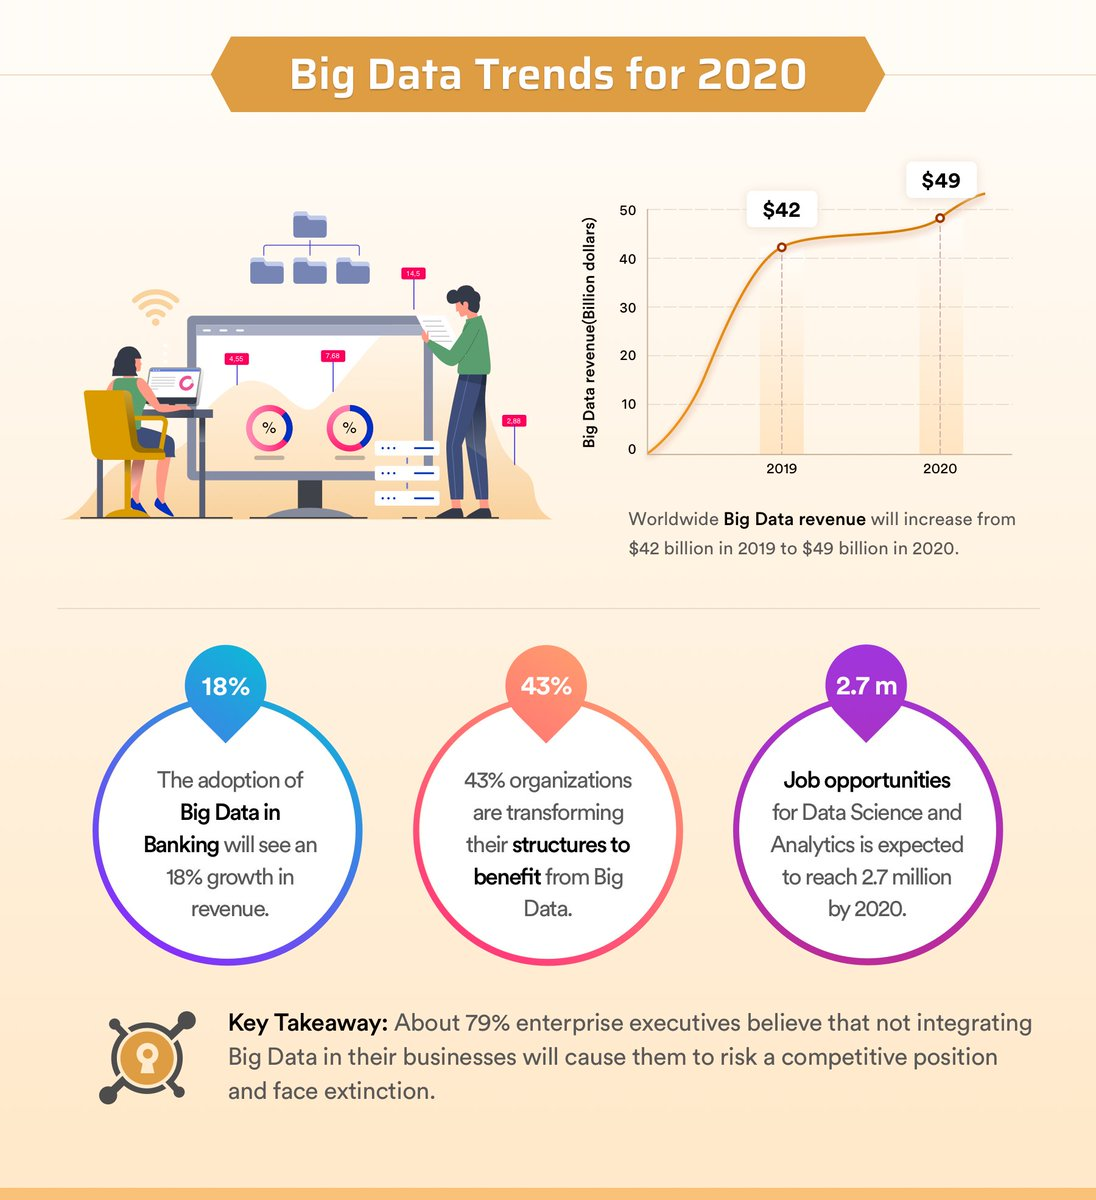 About 79% of enterprise executives believe that not integrating #Bigdata in their businesses will cause them to risk a competitive position & face extinction.  Visit  to learn more about the Top #Technology Trends for the Year 2020.  #Tech #Business